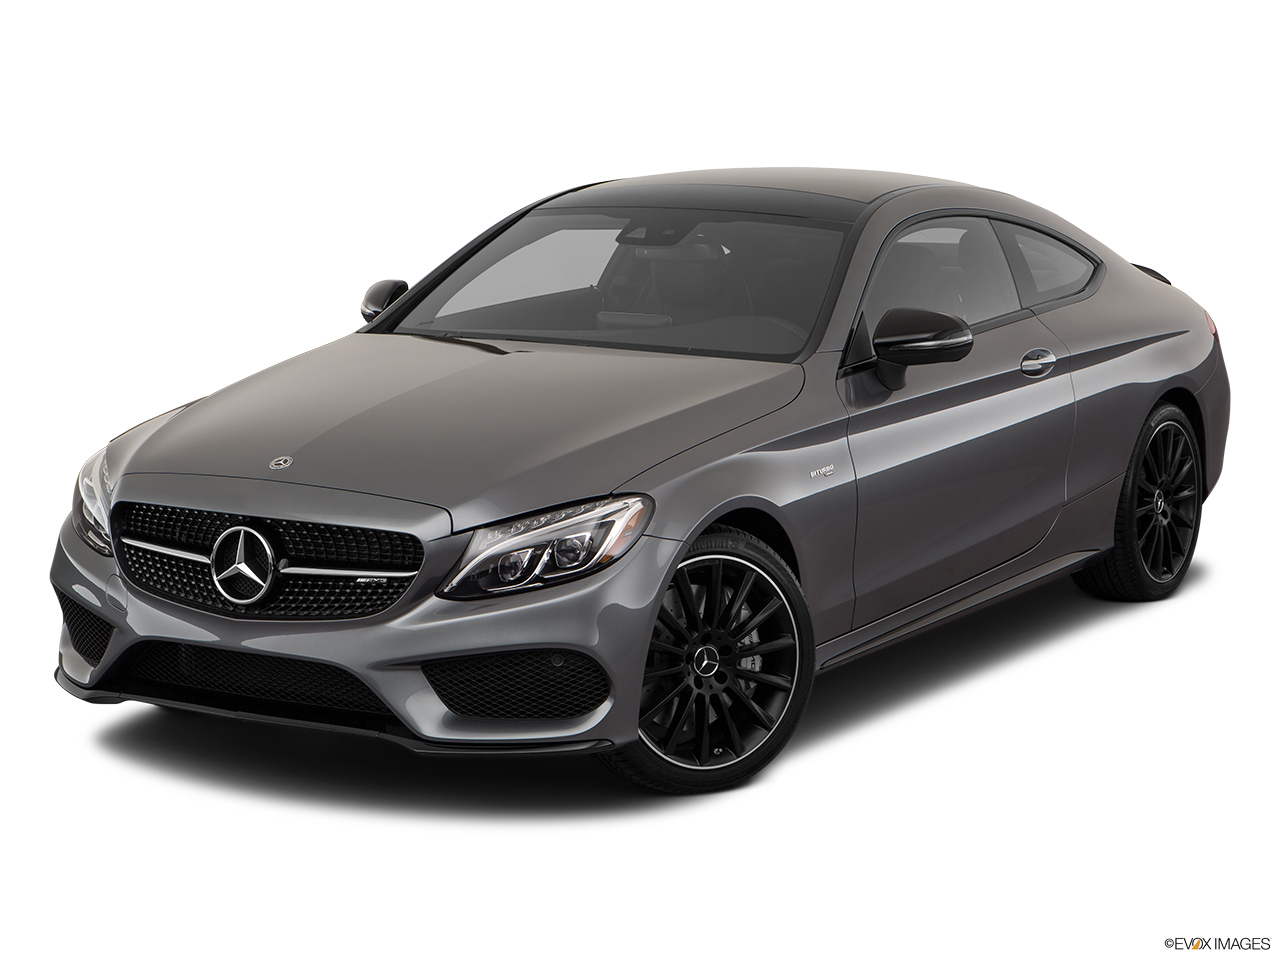 Mercedes benz c class coupe 2018 amg c43 4matic in saudi arabia new car prices specs reviews - Mercedes c class coupe 4matic ...